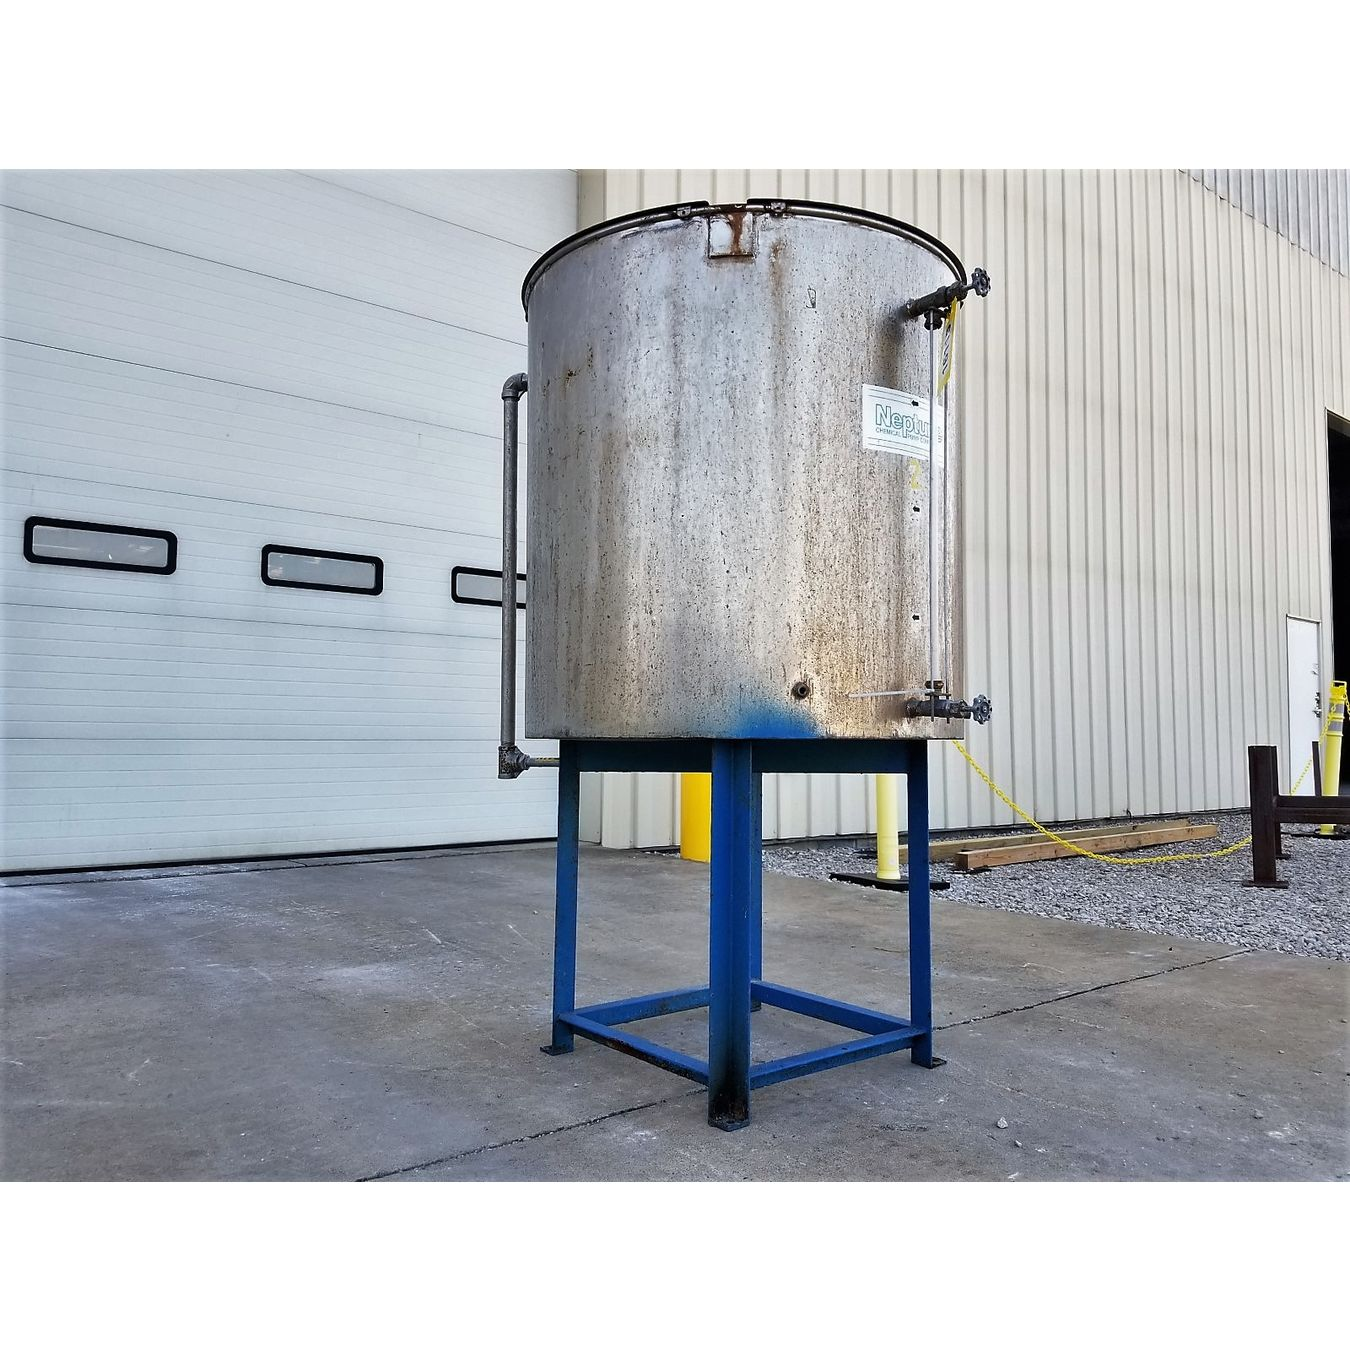 Used Water Tanks For Sale >> Used Stainless Steel Liquid Tank 140 Gallon For Sale Buy And Sell